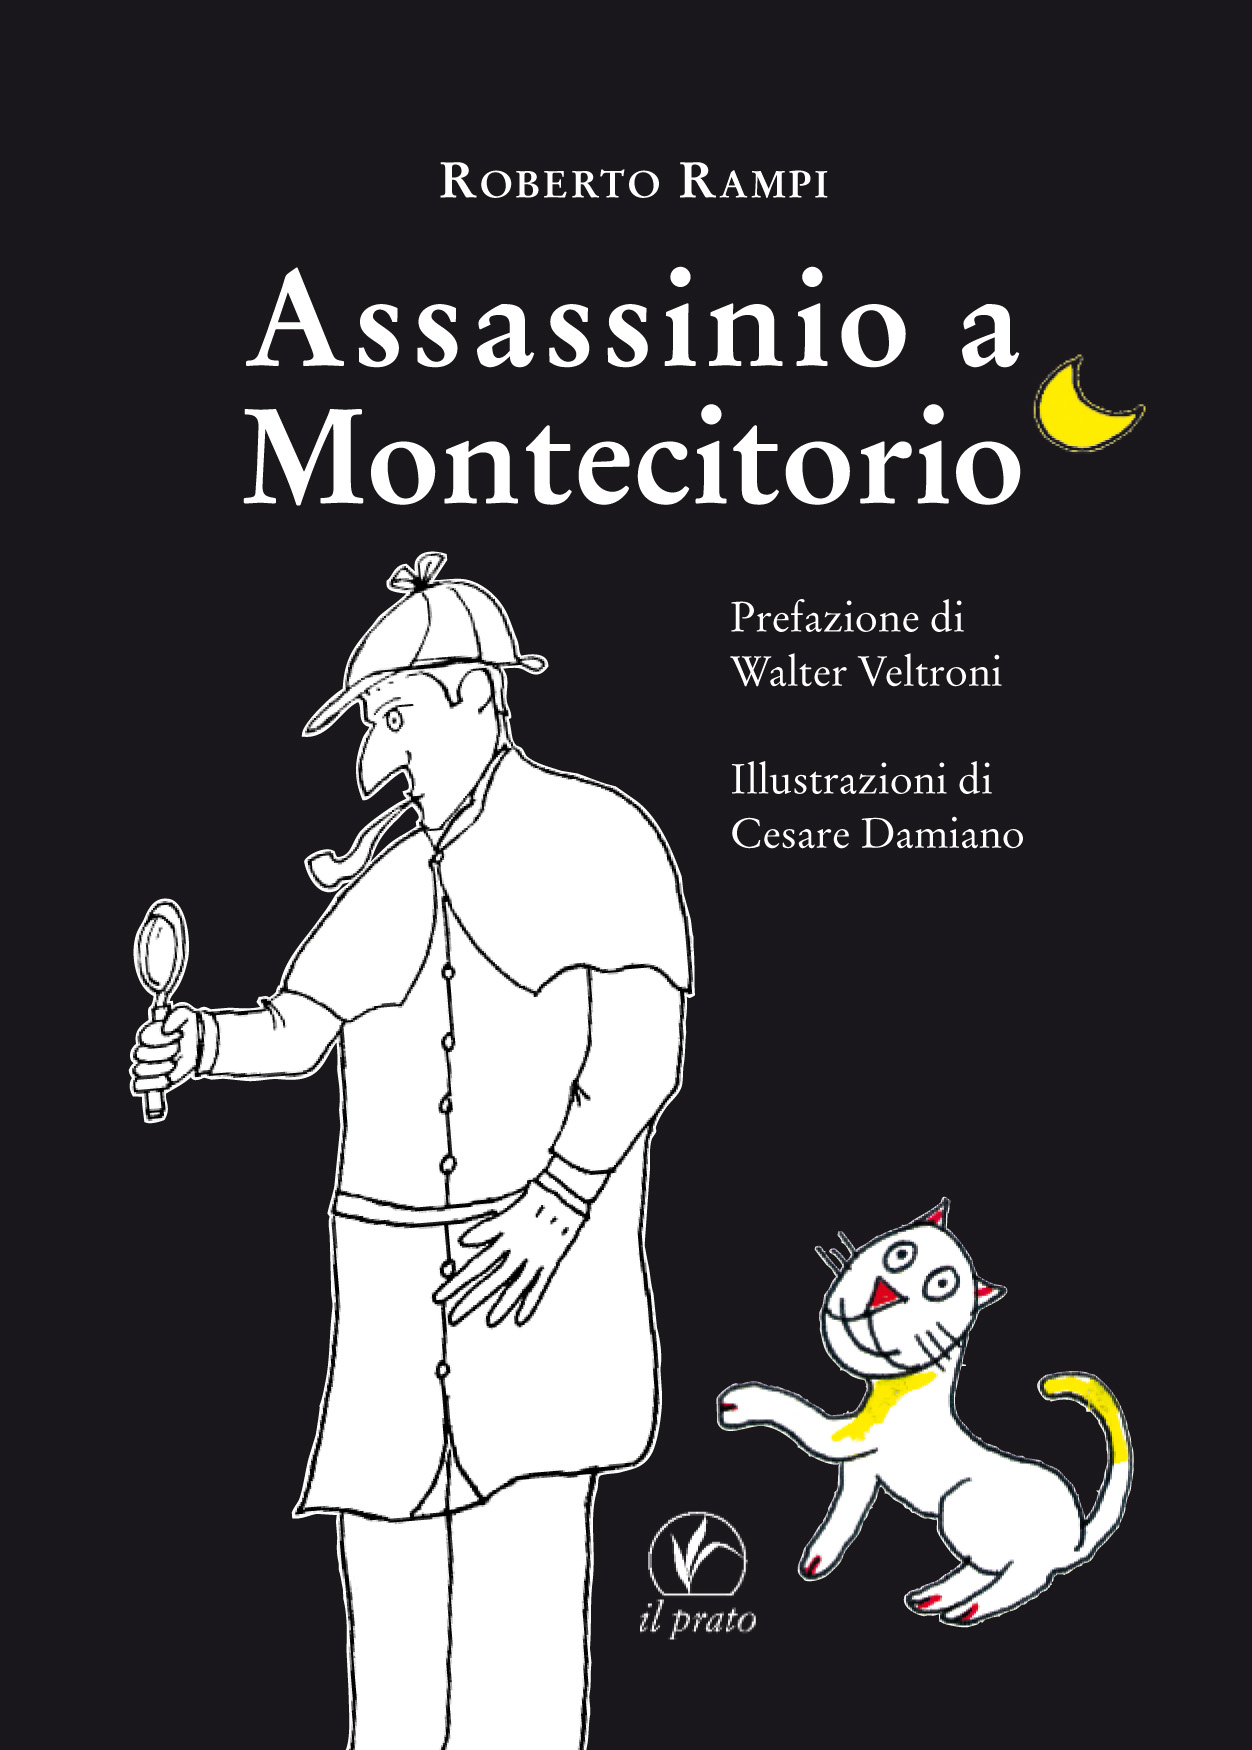 Assassinio a Montecitorio